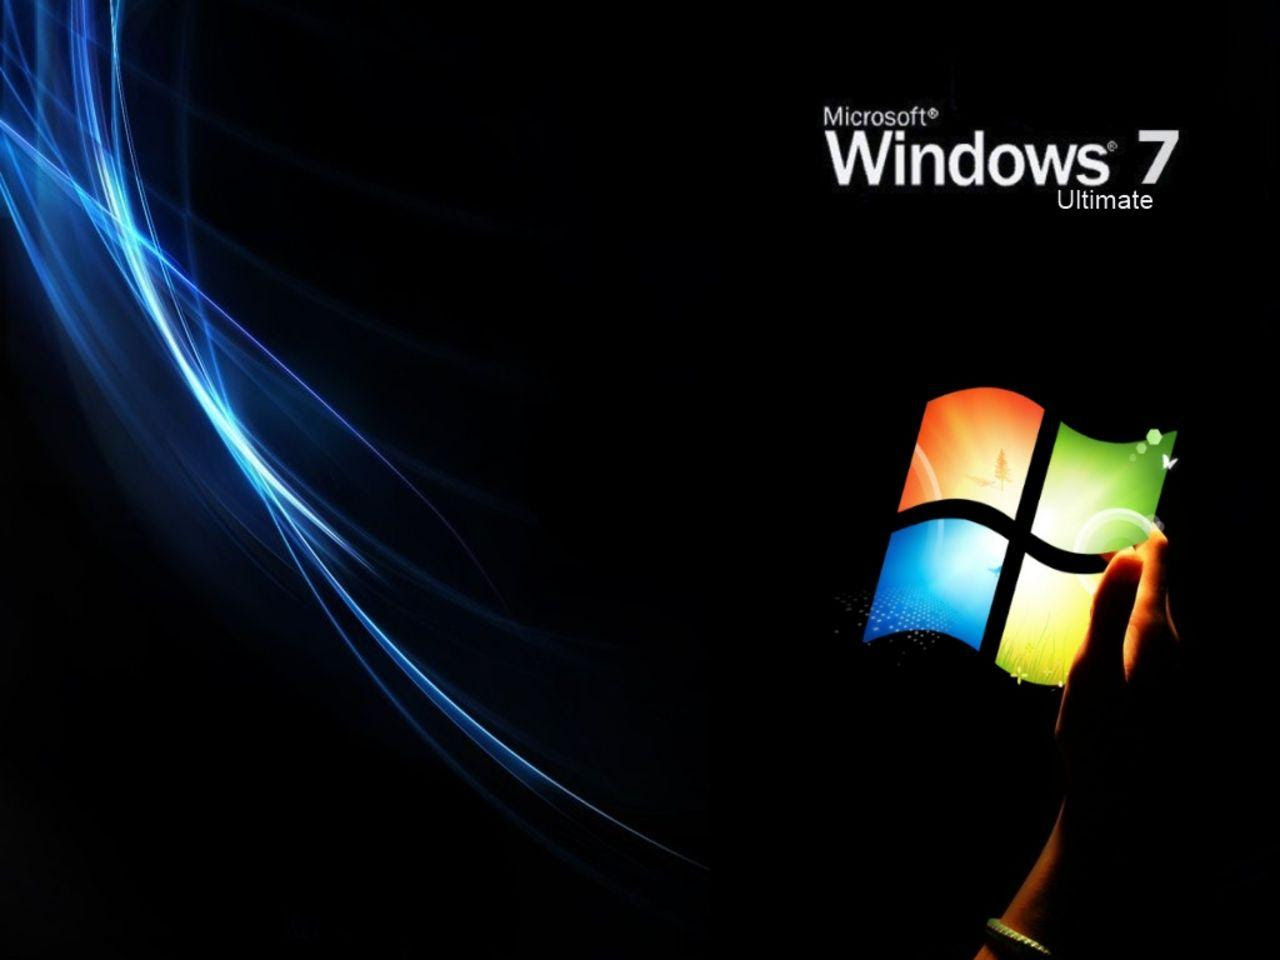 To install bing desktop from windows vista or from windows 7, follow these steps: Important Concept 41 Hd Wallpapers For Windows 7 Ultimate Cars